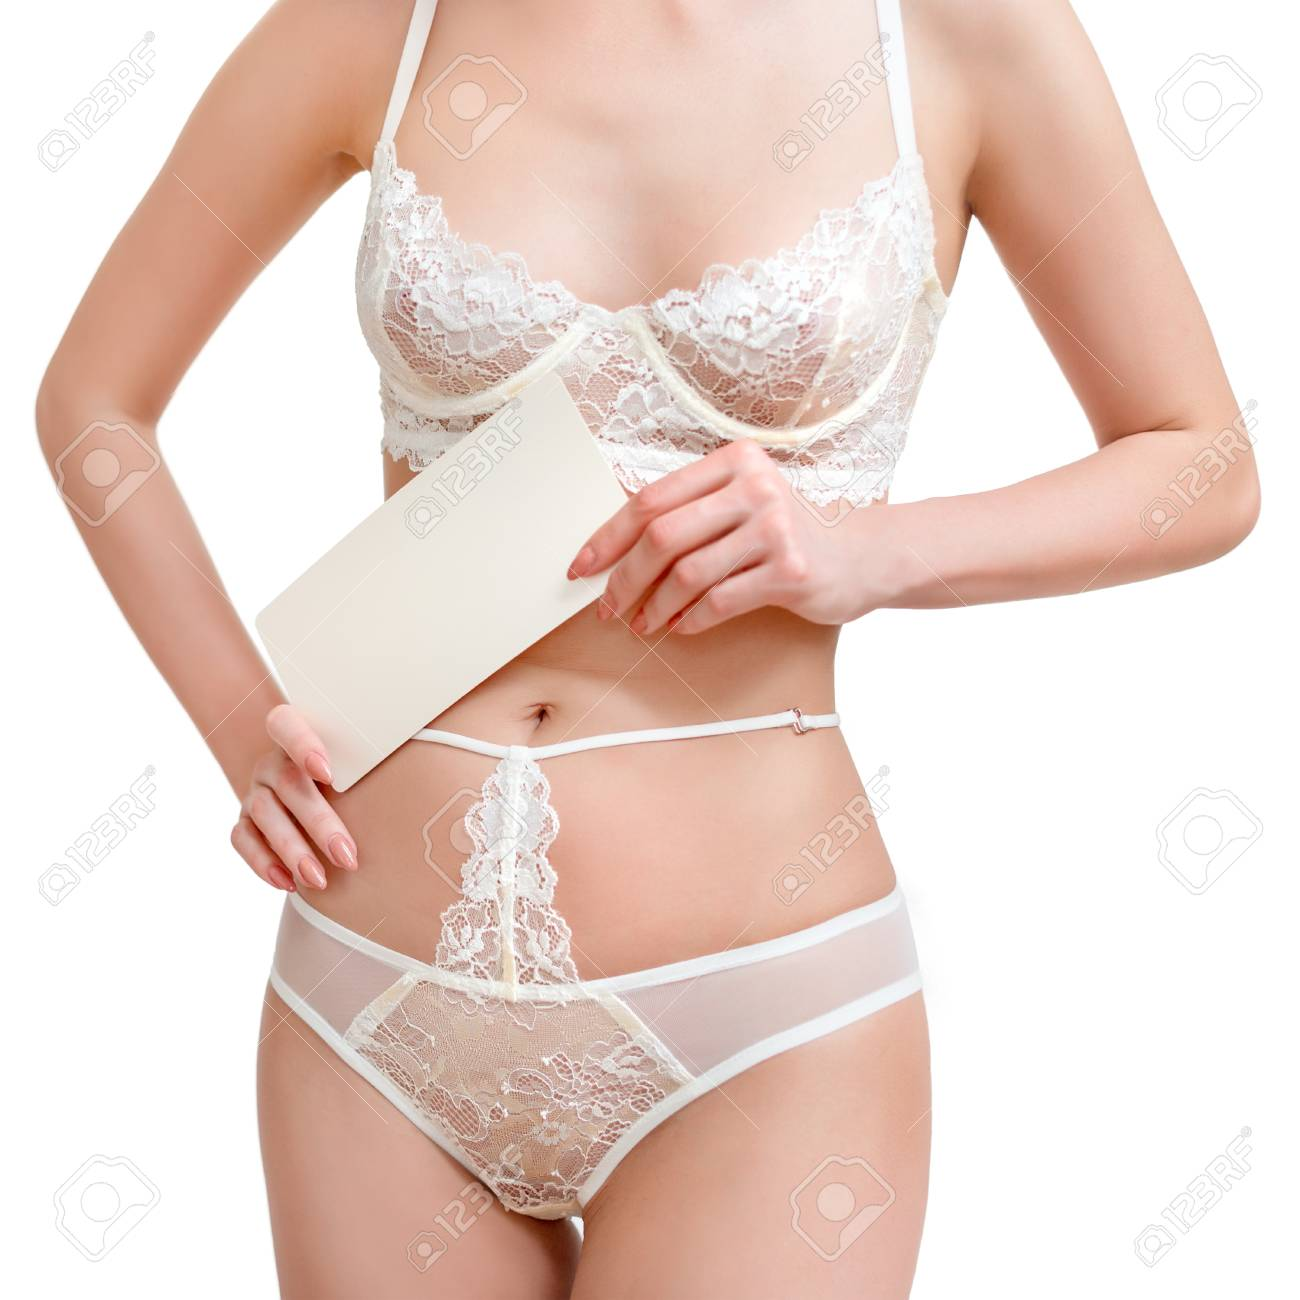 92b94cdea63 Slim, beautiful woman in lace lingerie holding blank sheet of paper. Body  parts, closeup of women half length body in white strings and bra.